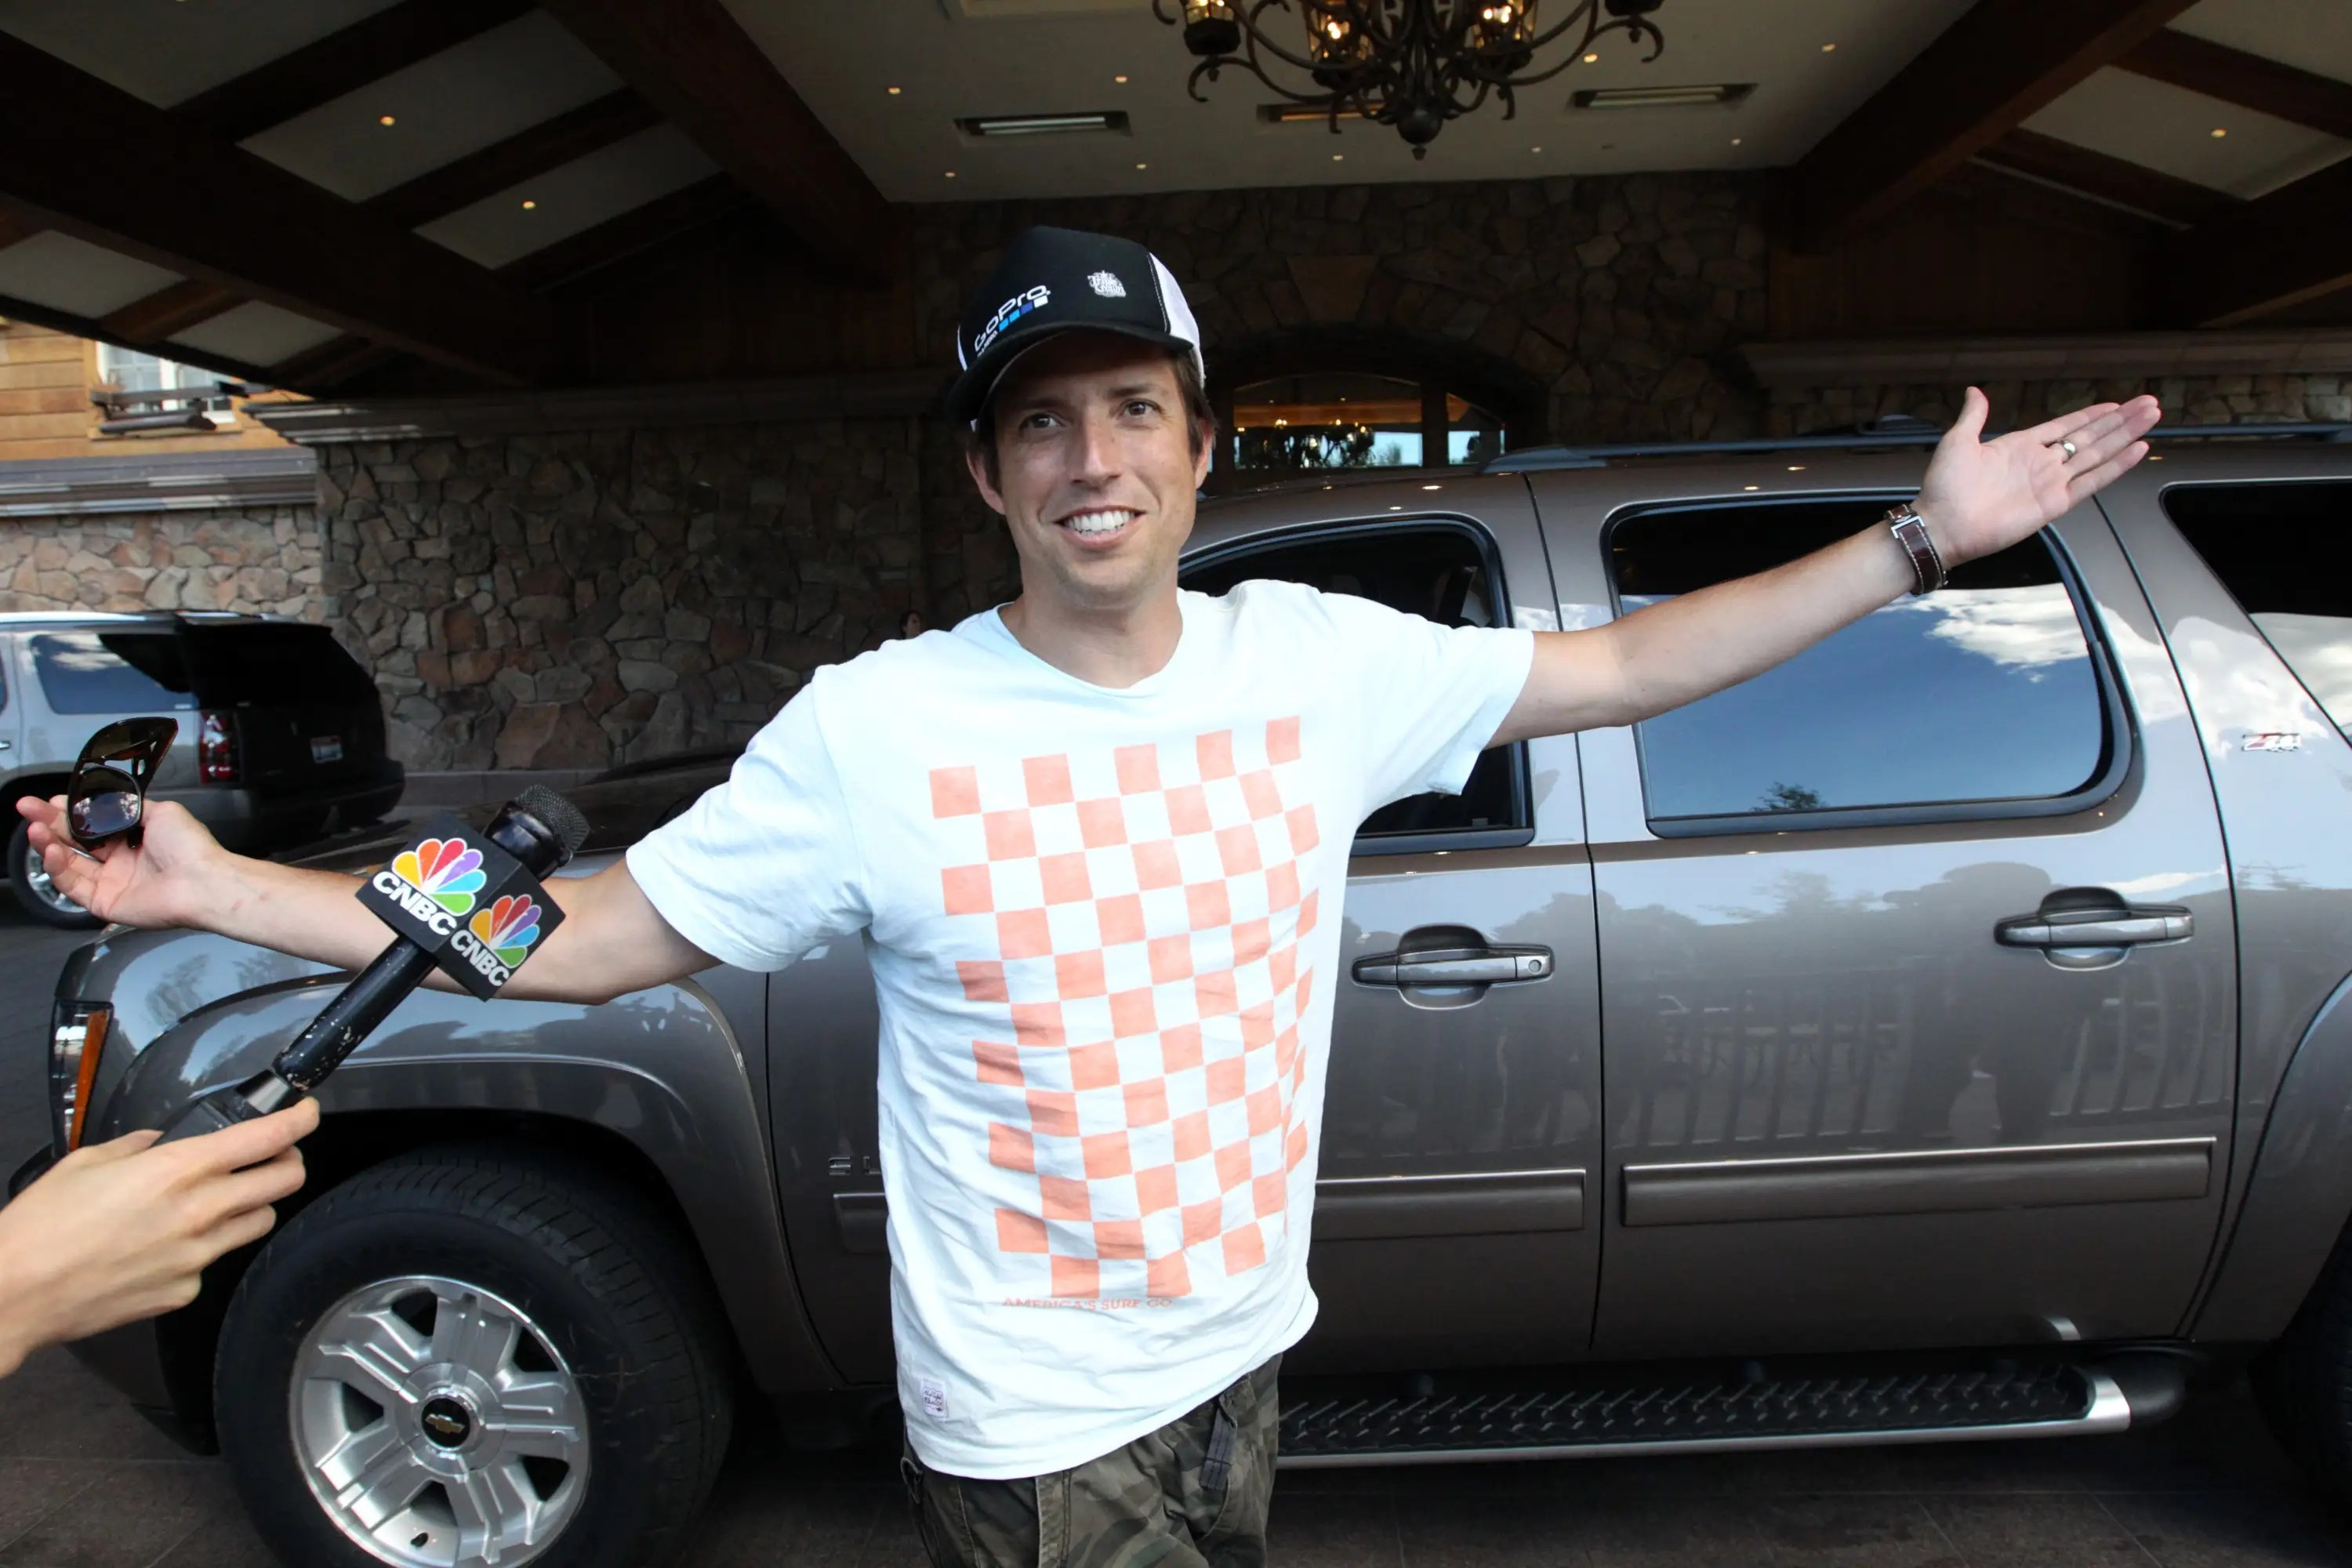 Nicholas Woodman, founder of GoPro cameras, is a new face on the scene.